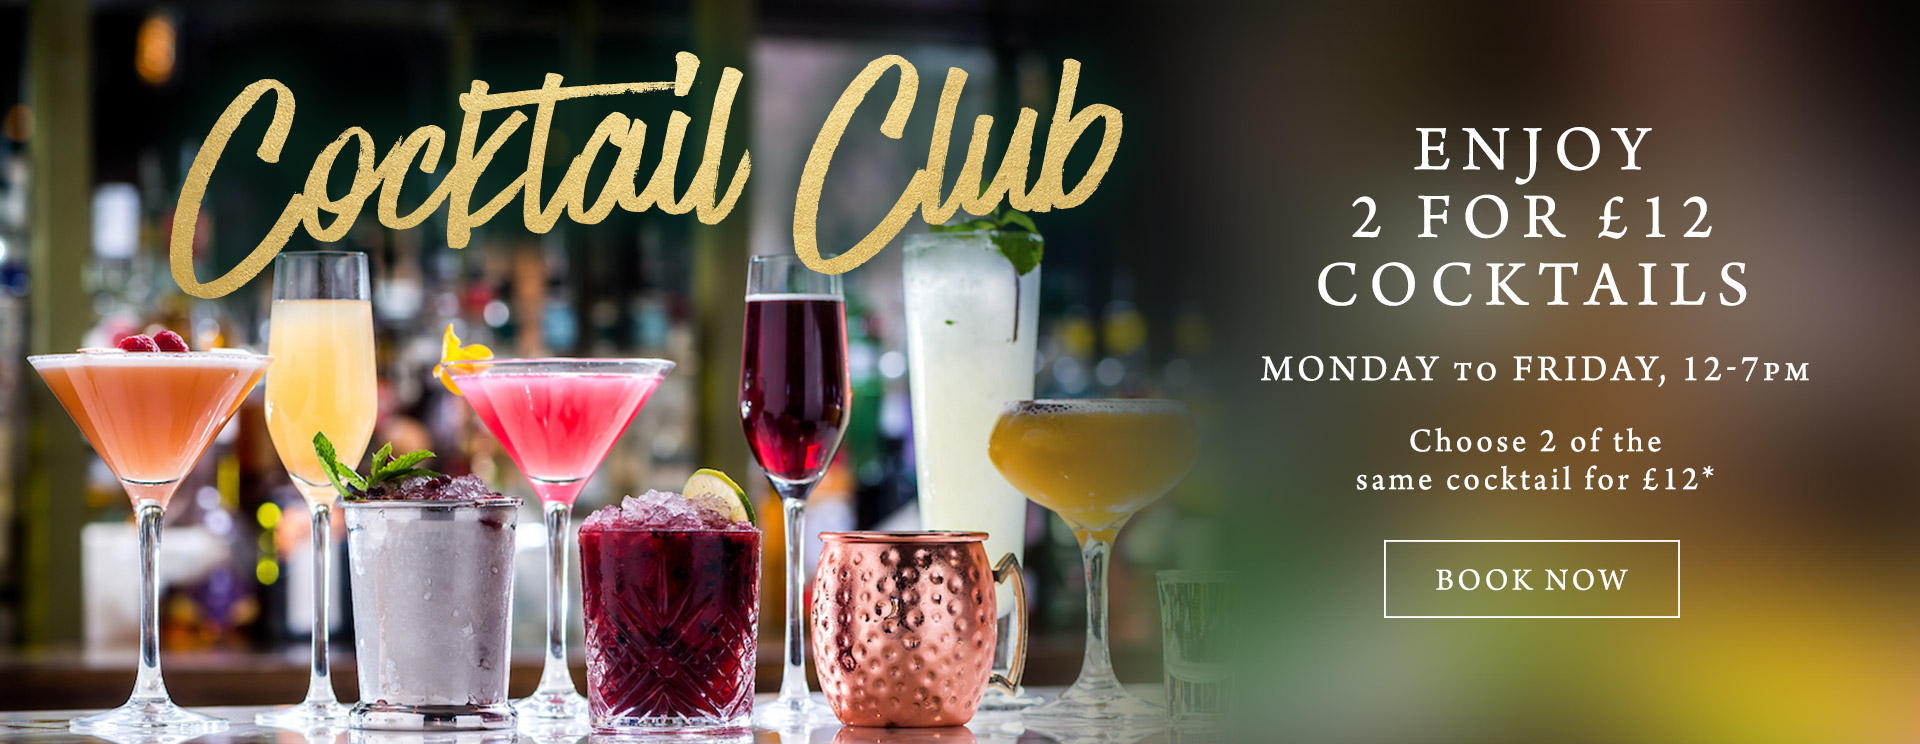 2 for £12 cocktails at The Corner House